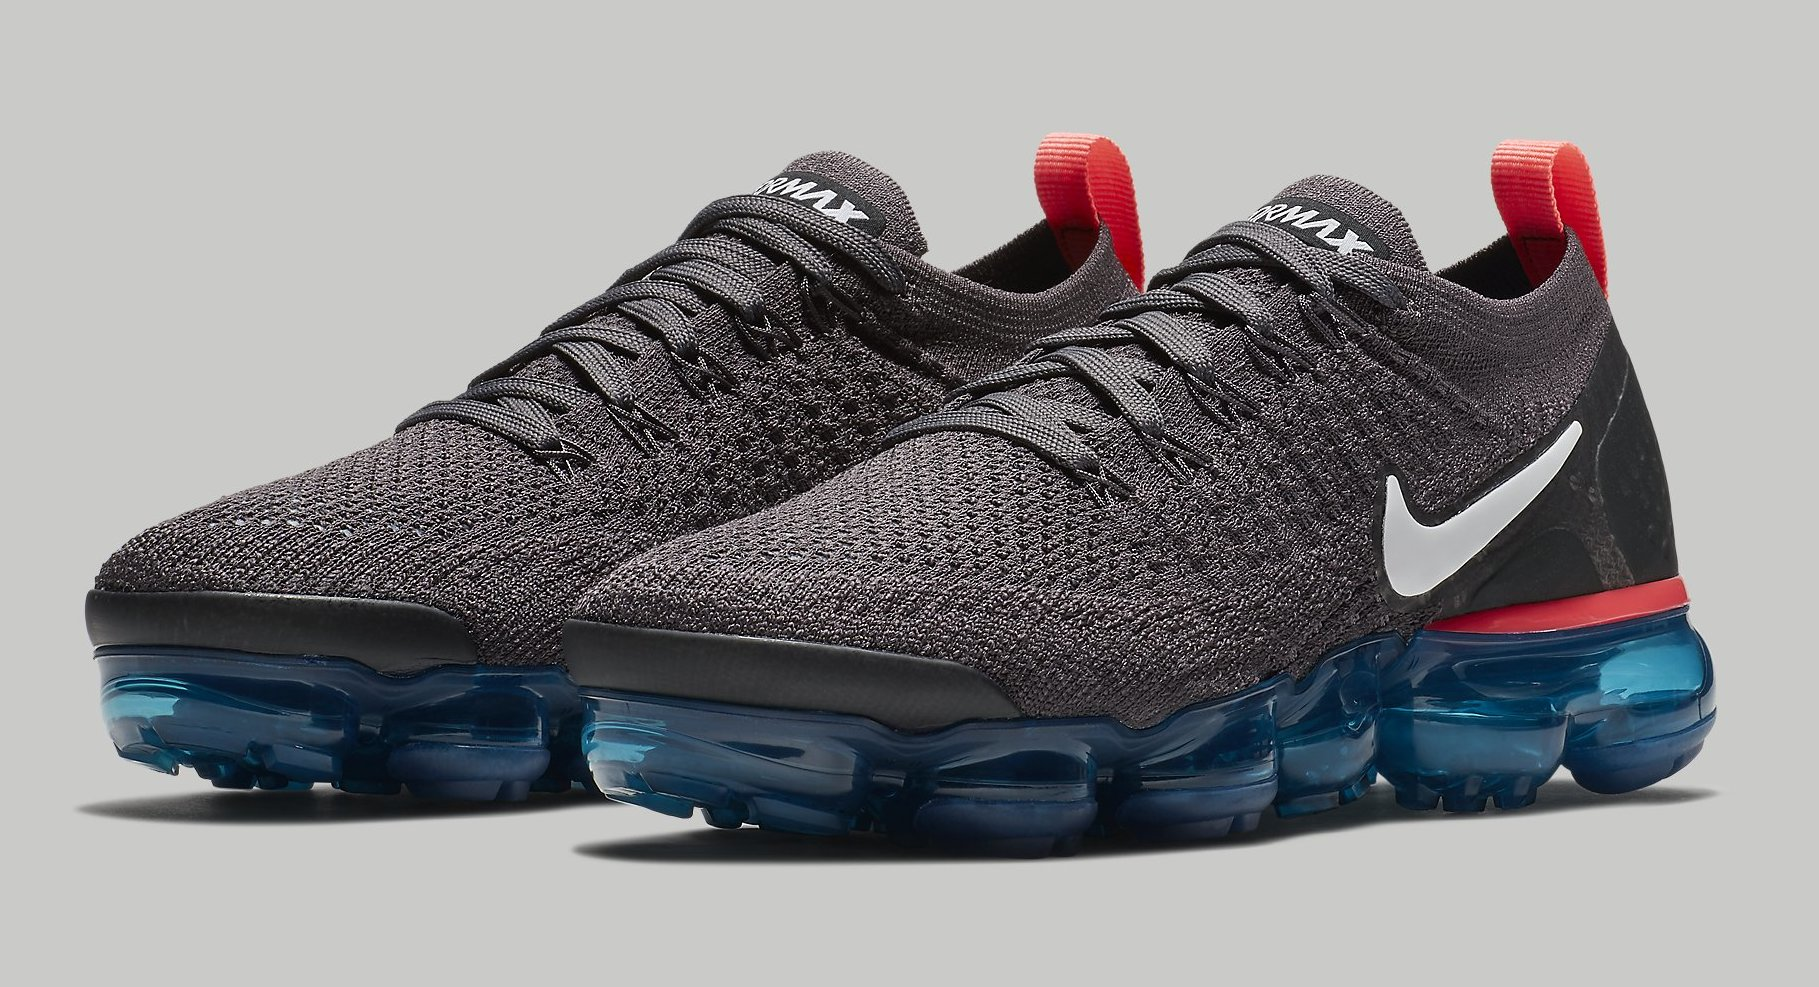 6be39486d1e Nike Air VaporMax 2 Flyknit  Thunder Grey  Release Date Aug. 2018 ...